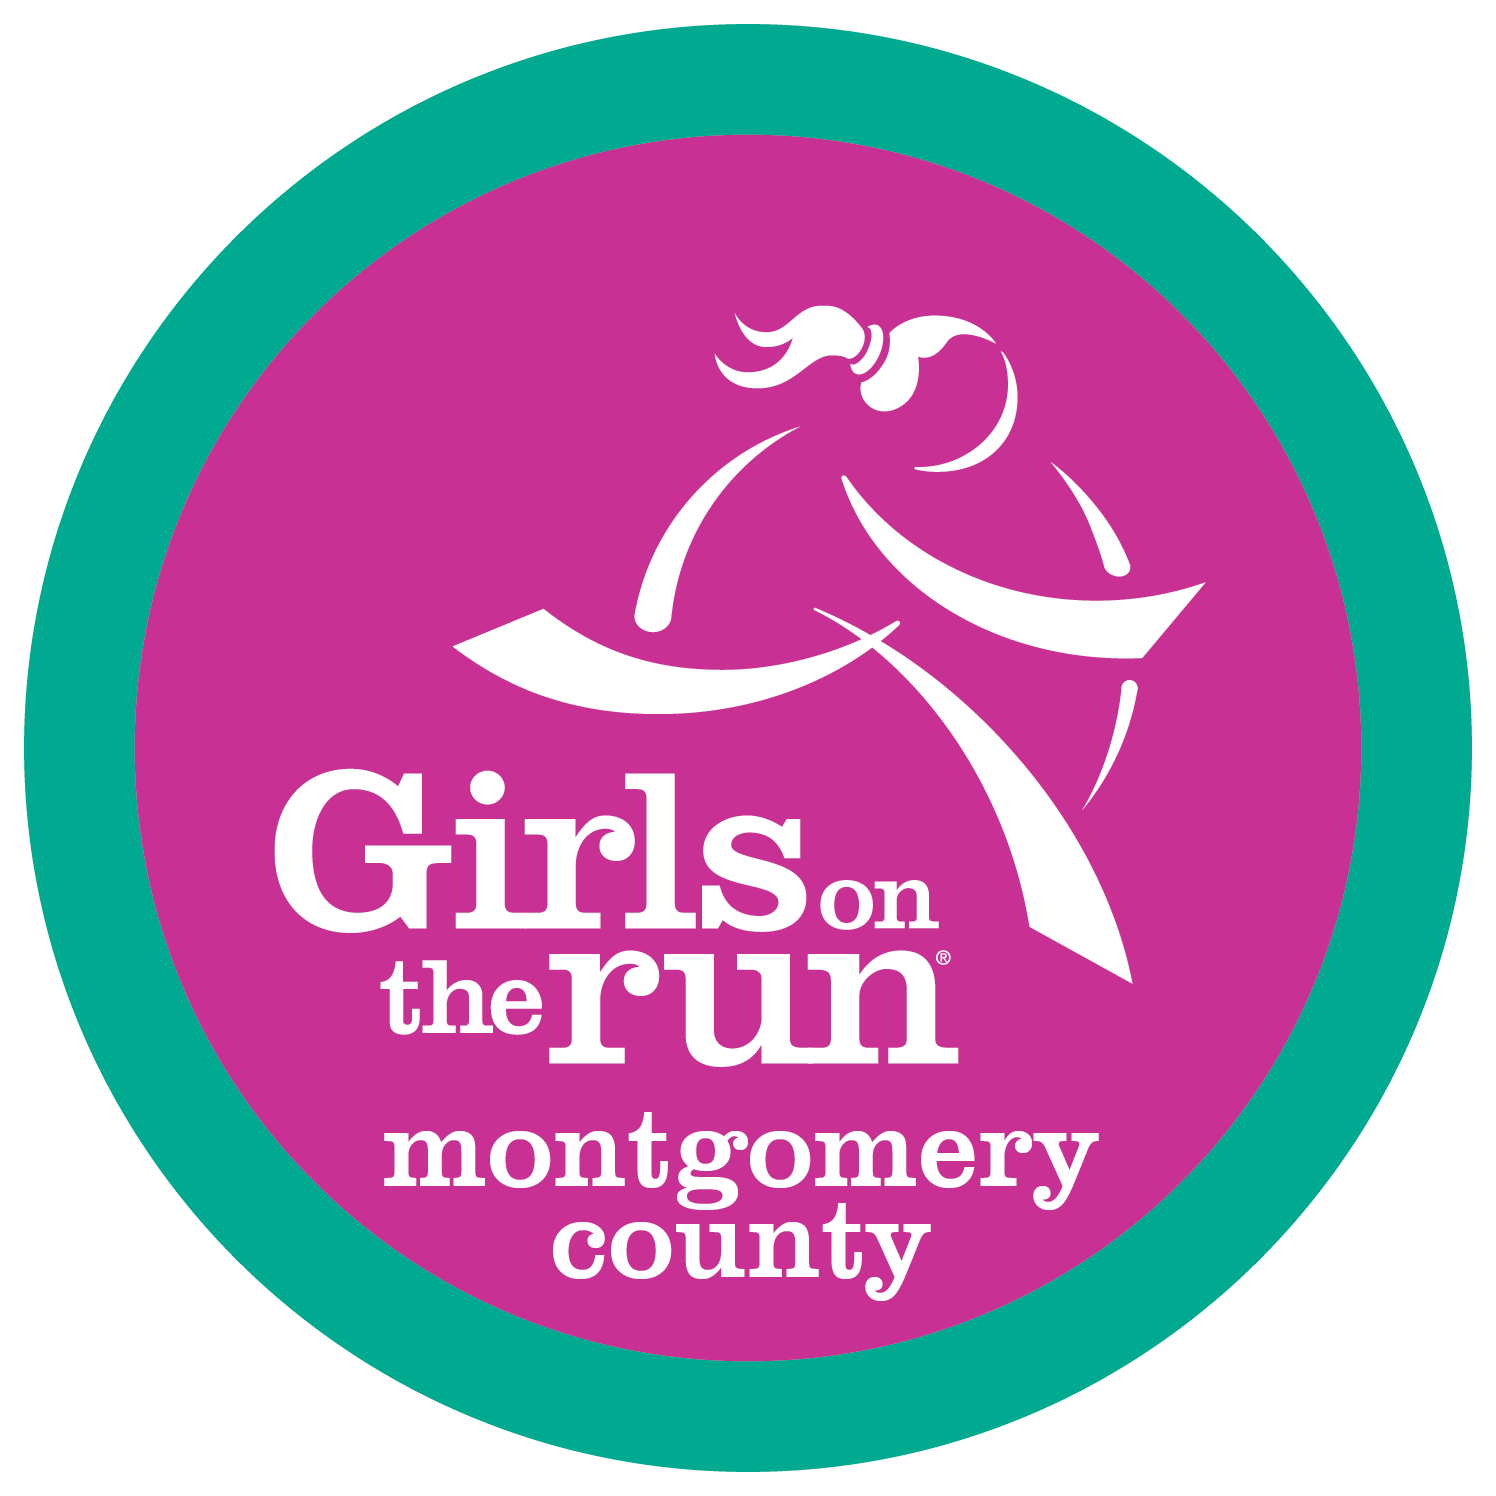 Girls on the Run 5K Montgomery County Maryland - cover image